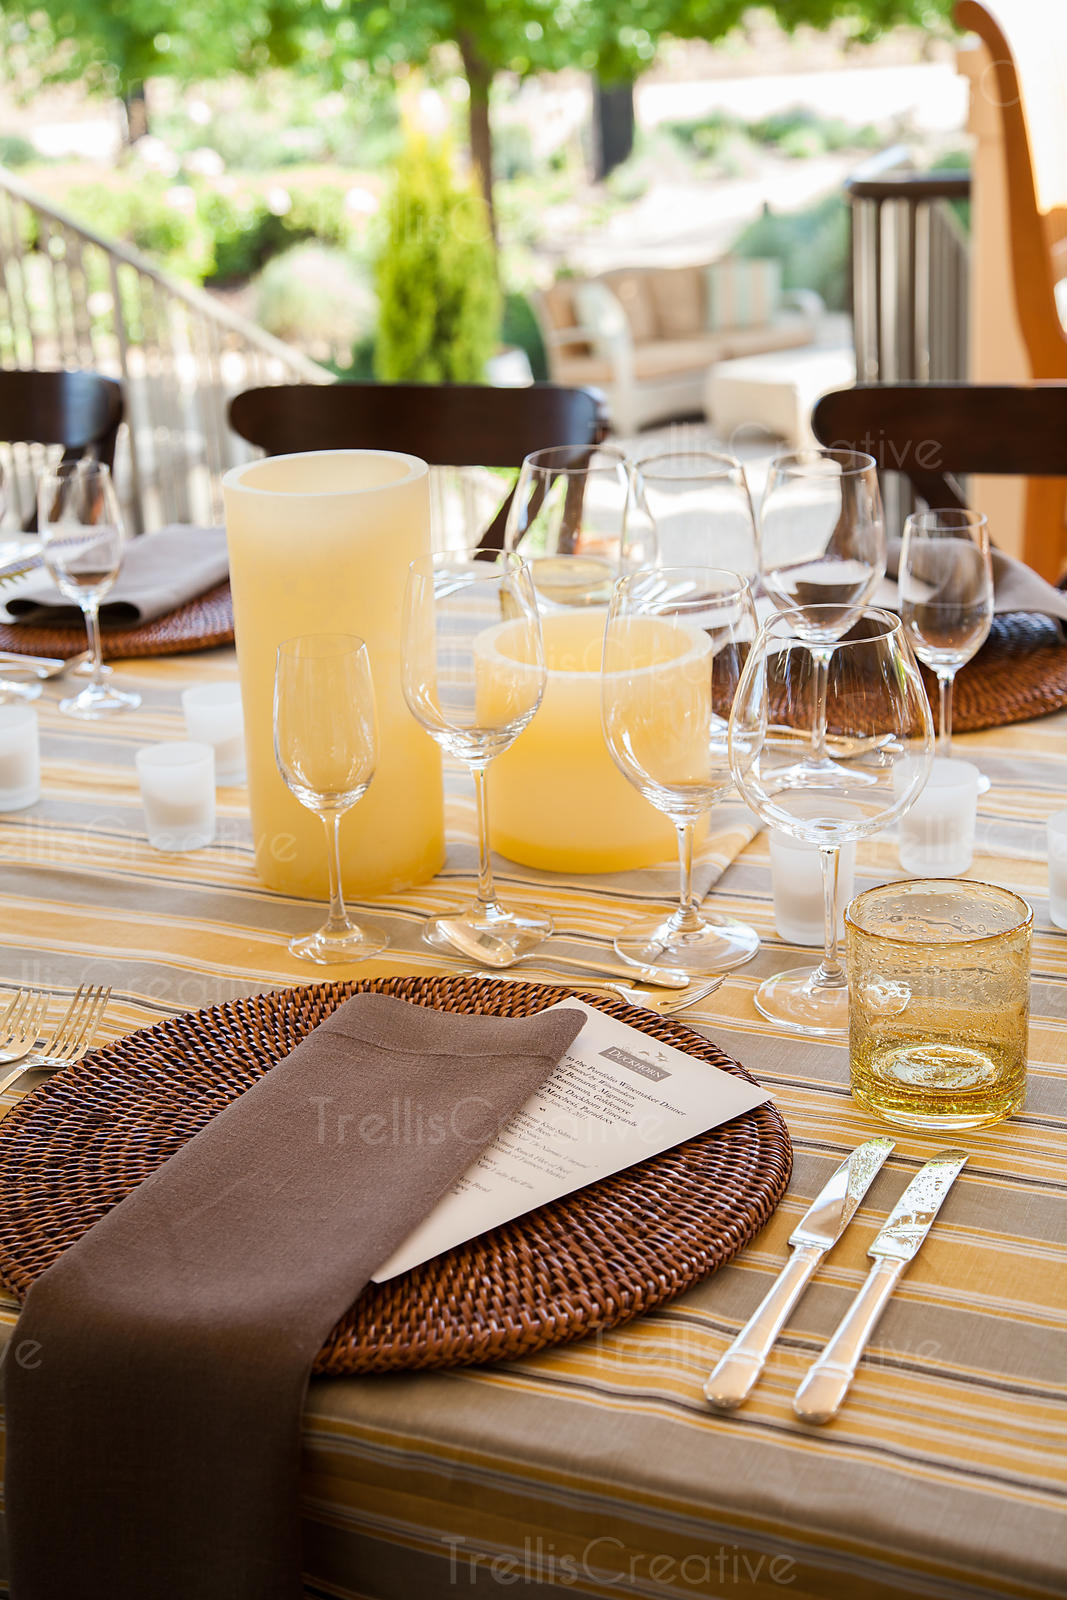 A place setting at a beautifully decorated outdoor dinner table in wine country